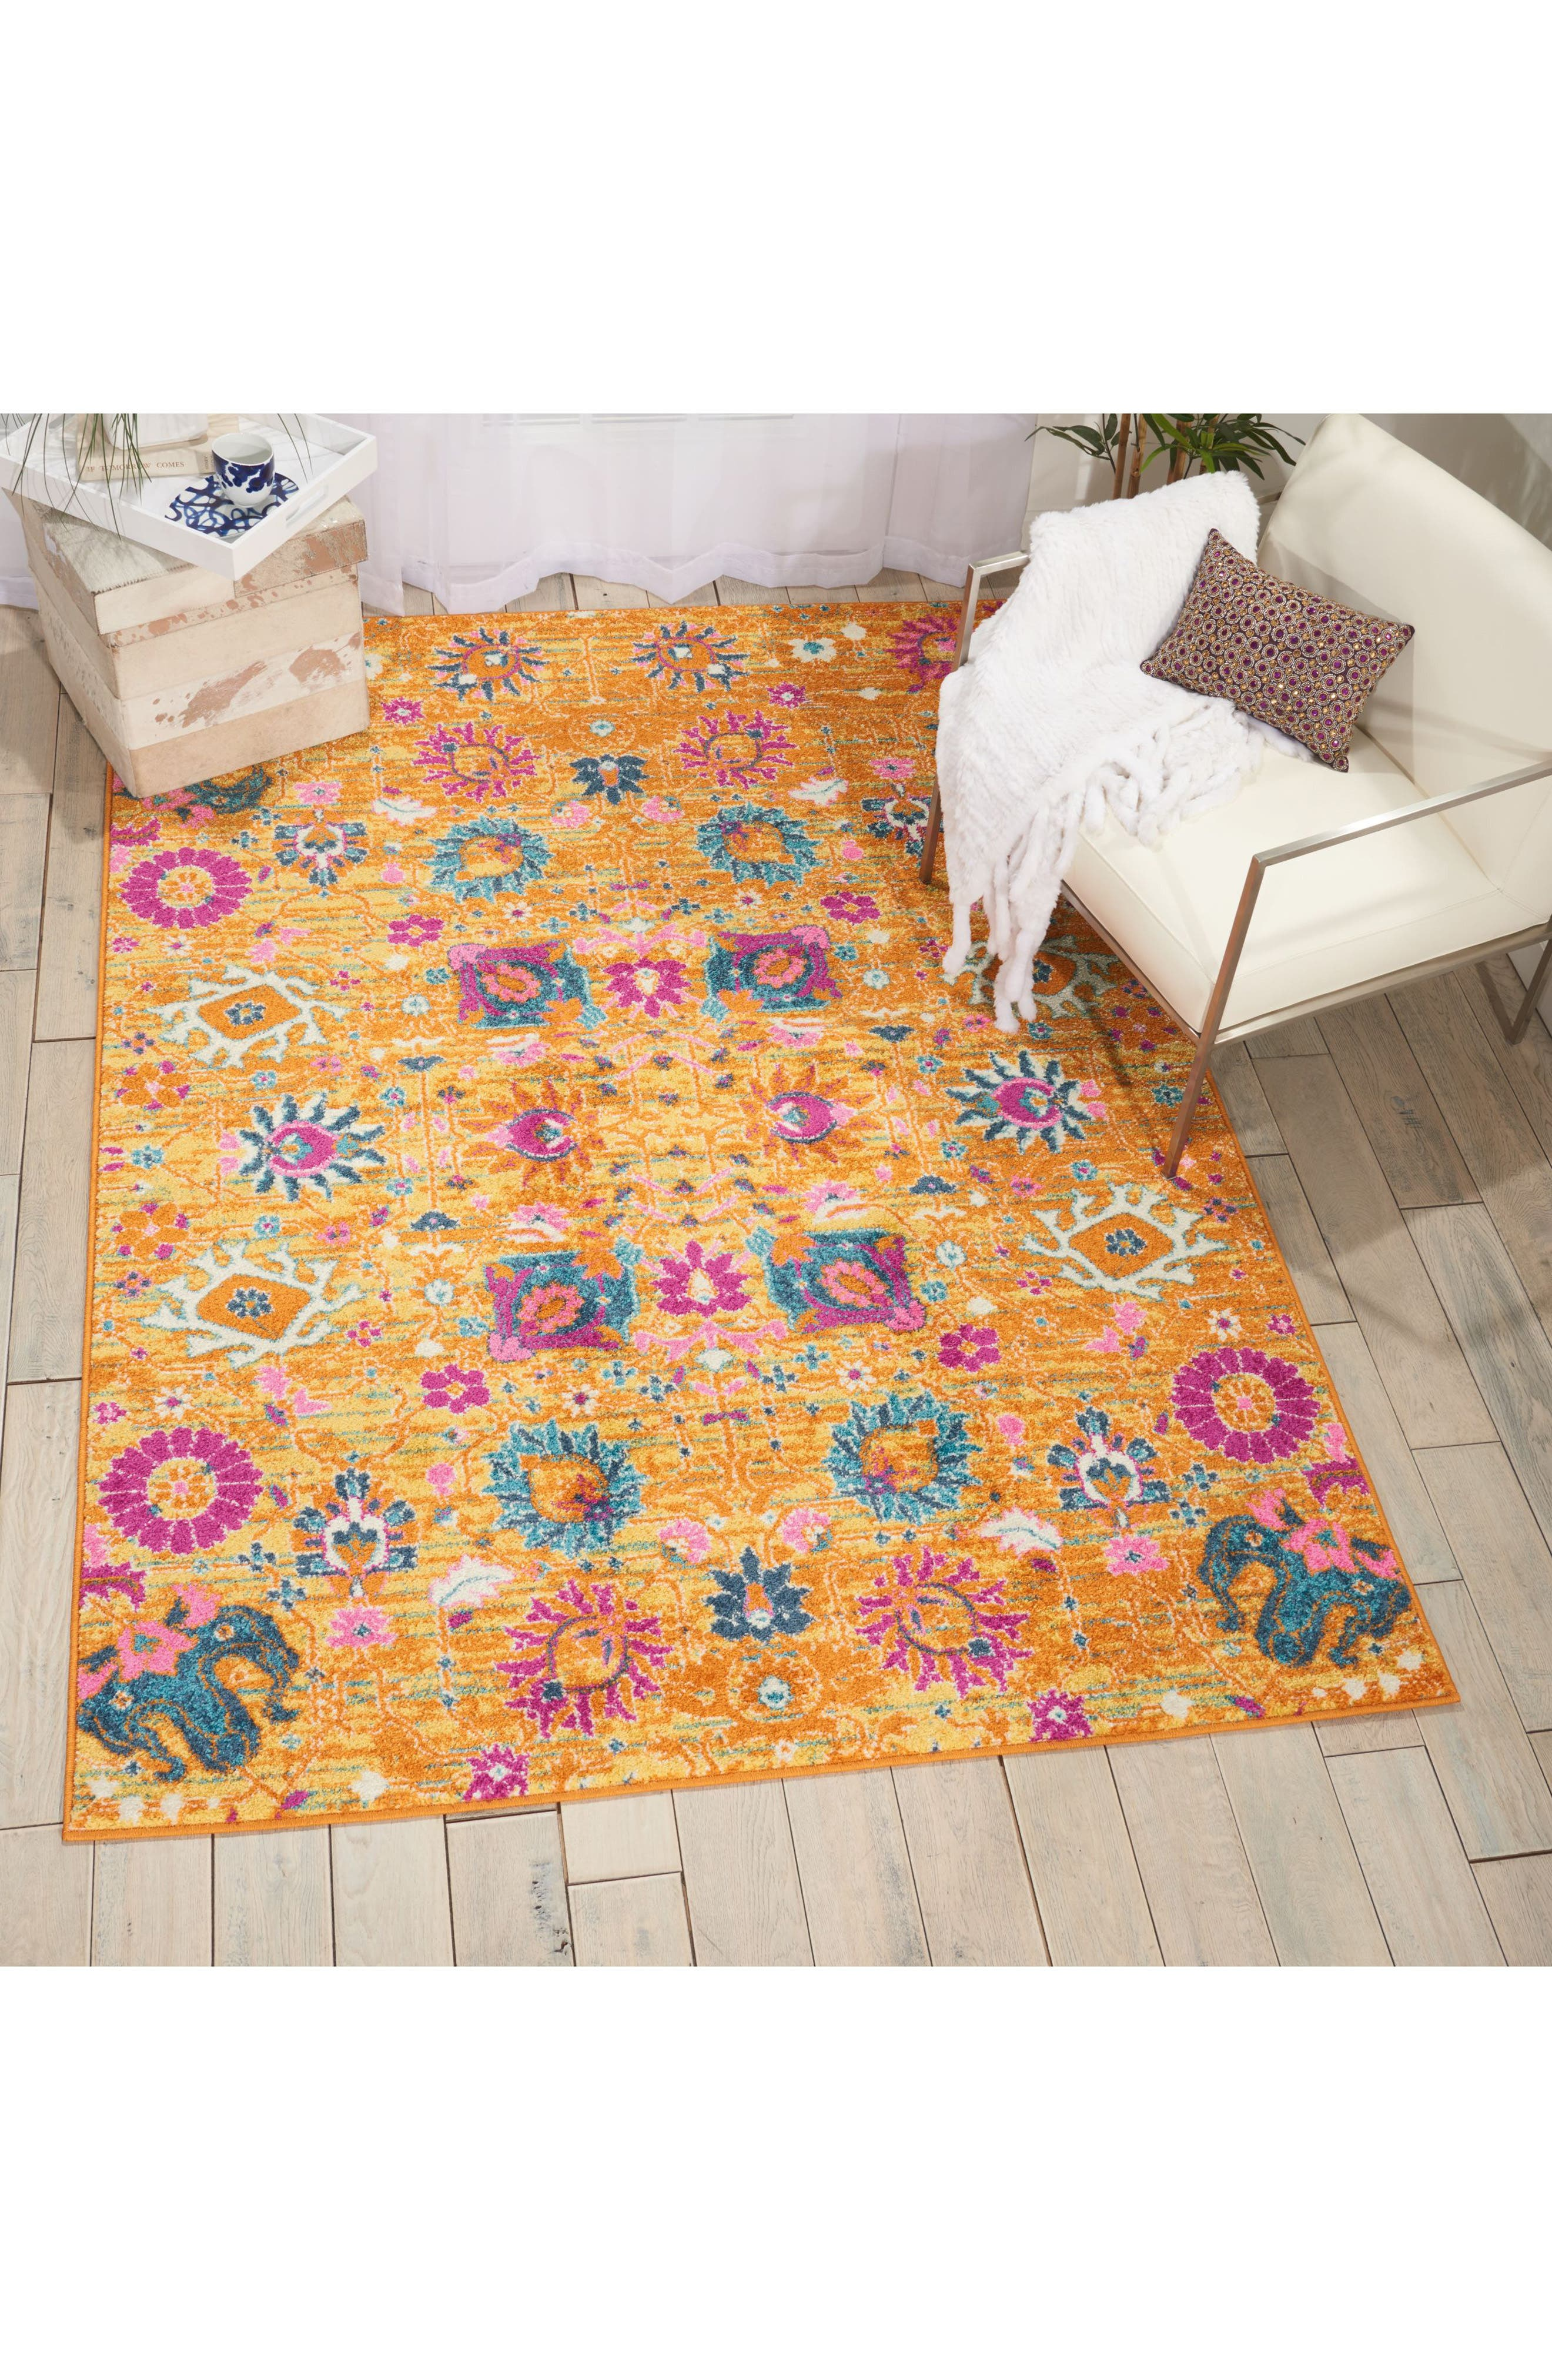 Sunburst Rug,                             Alternate thumbnail 6, color,                             800